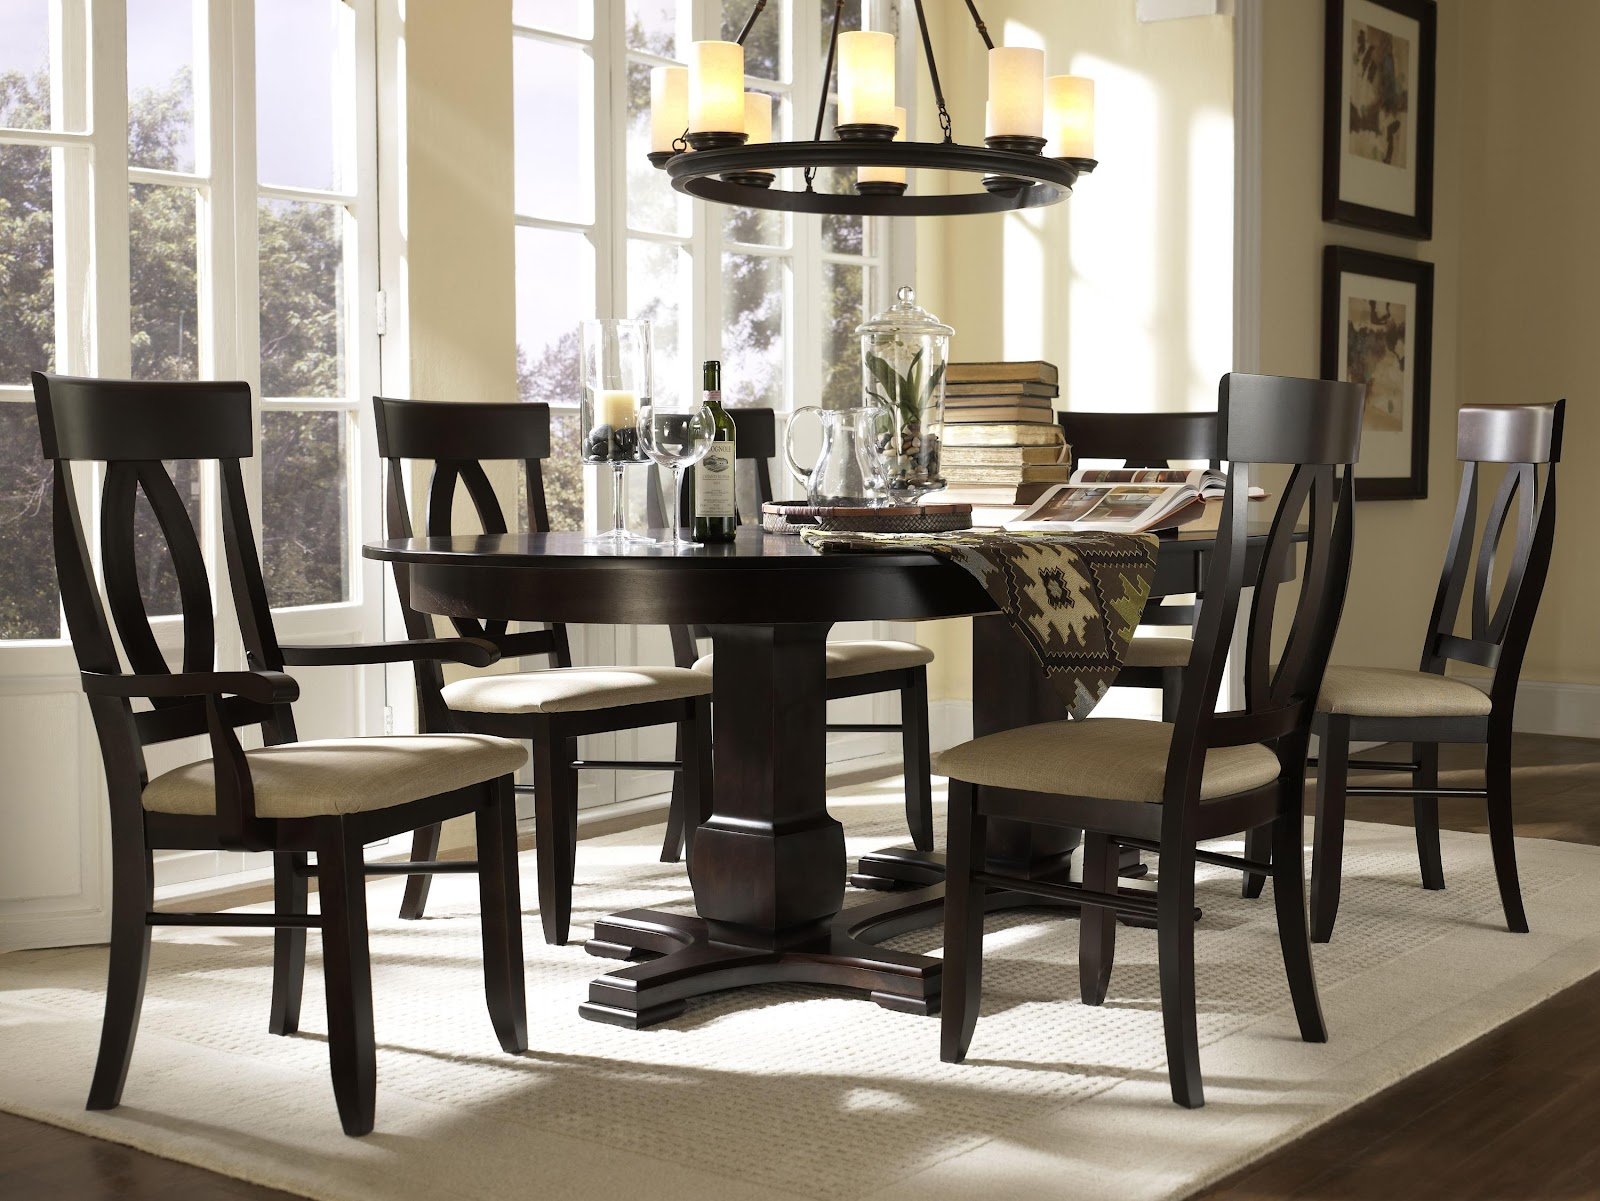 Canadel furniture long island new york ny dining room for Breakfast sets furniture